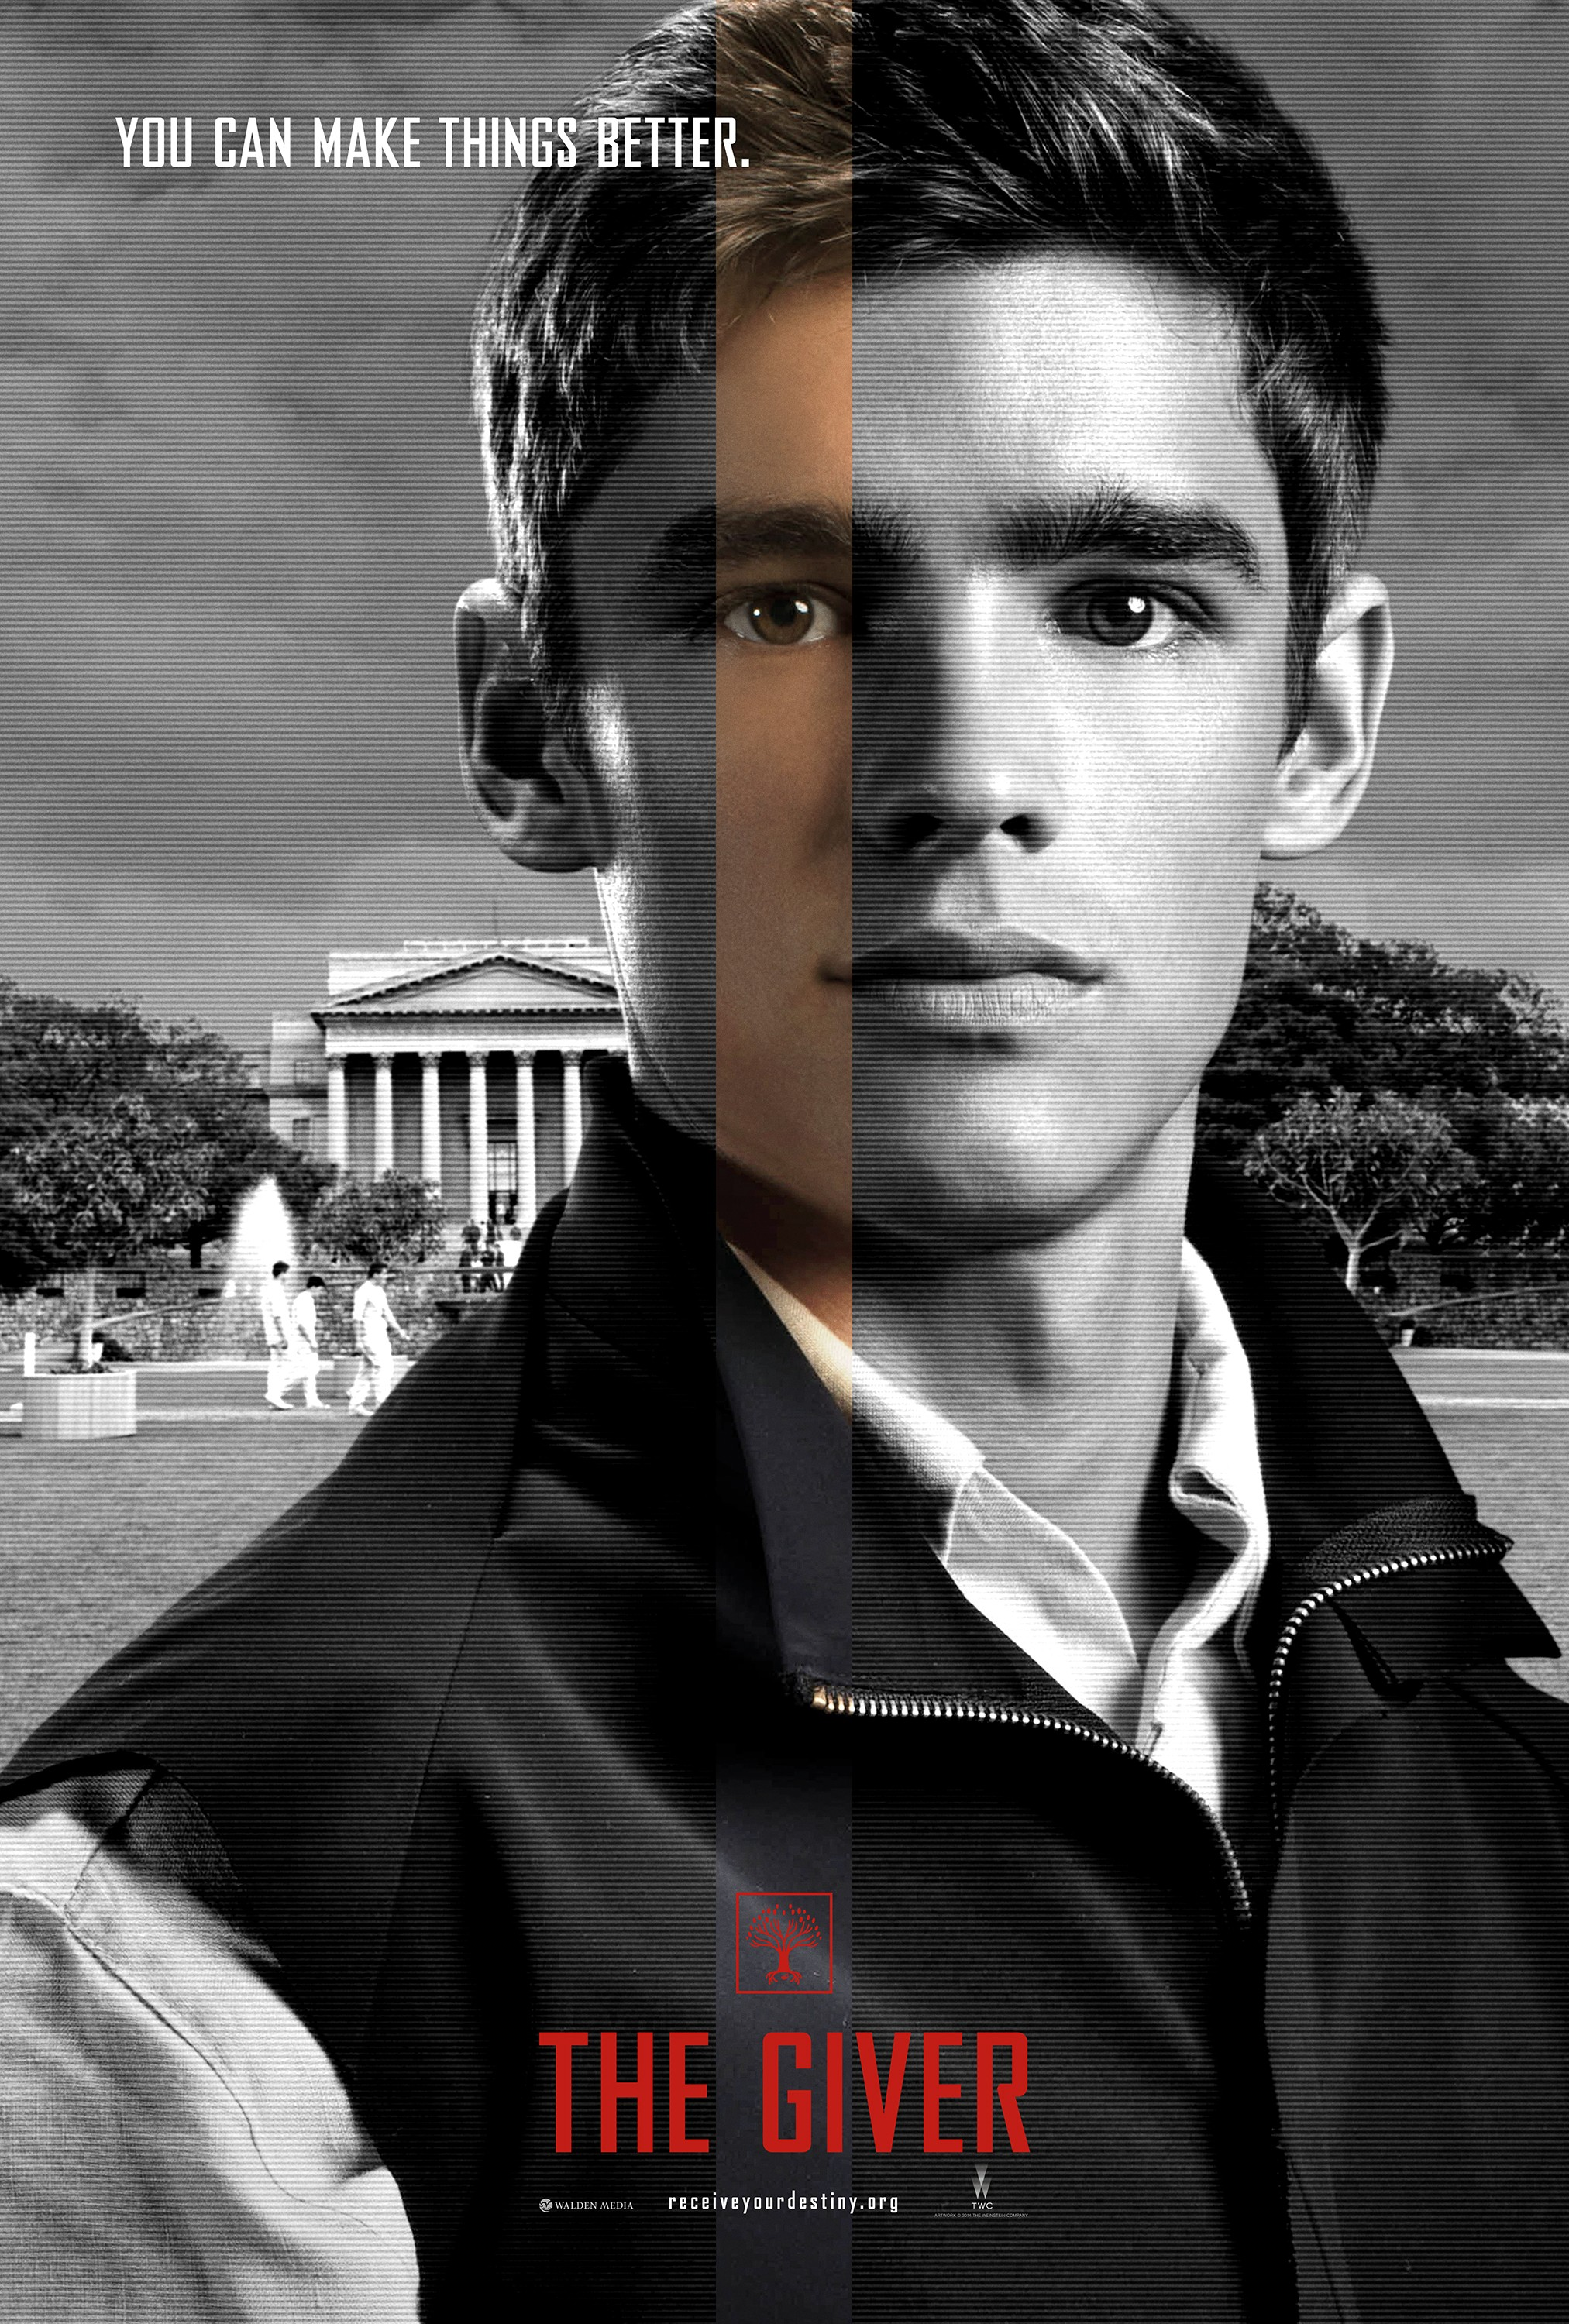 The Giver-Official Poster Banner PROMO XXLG-23MAIO2014-04